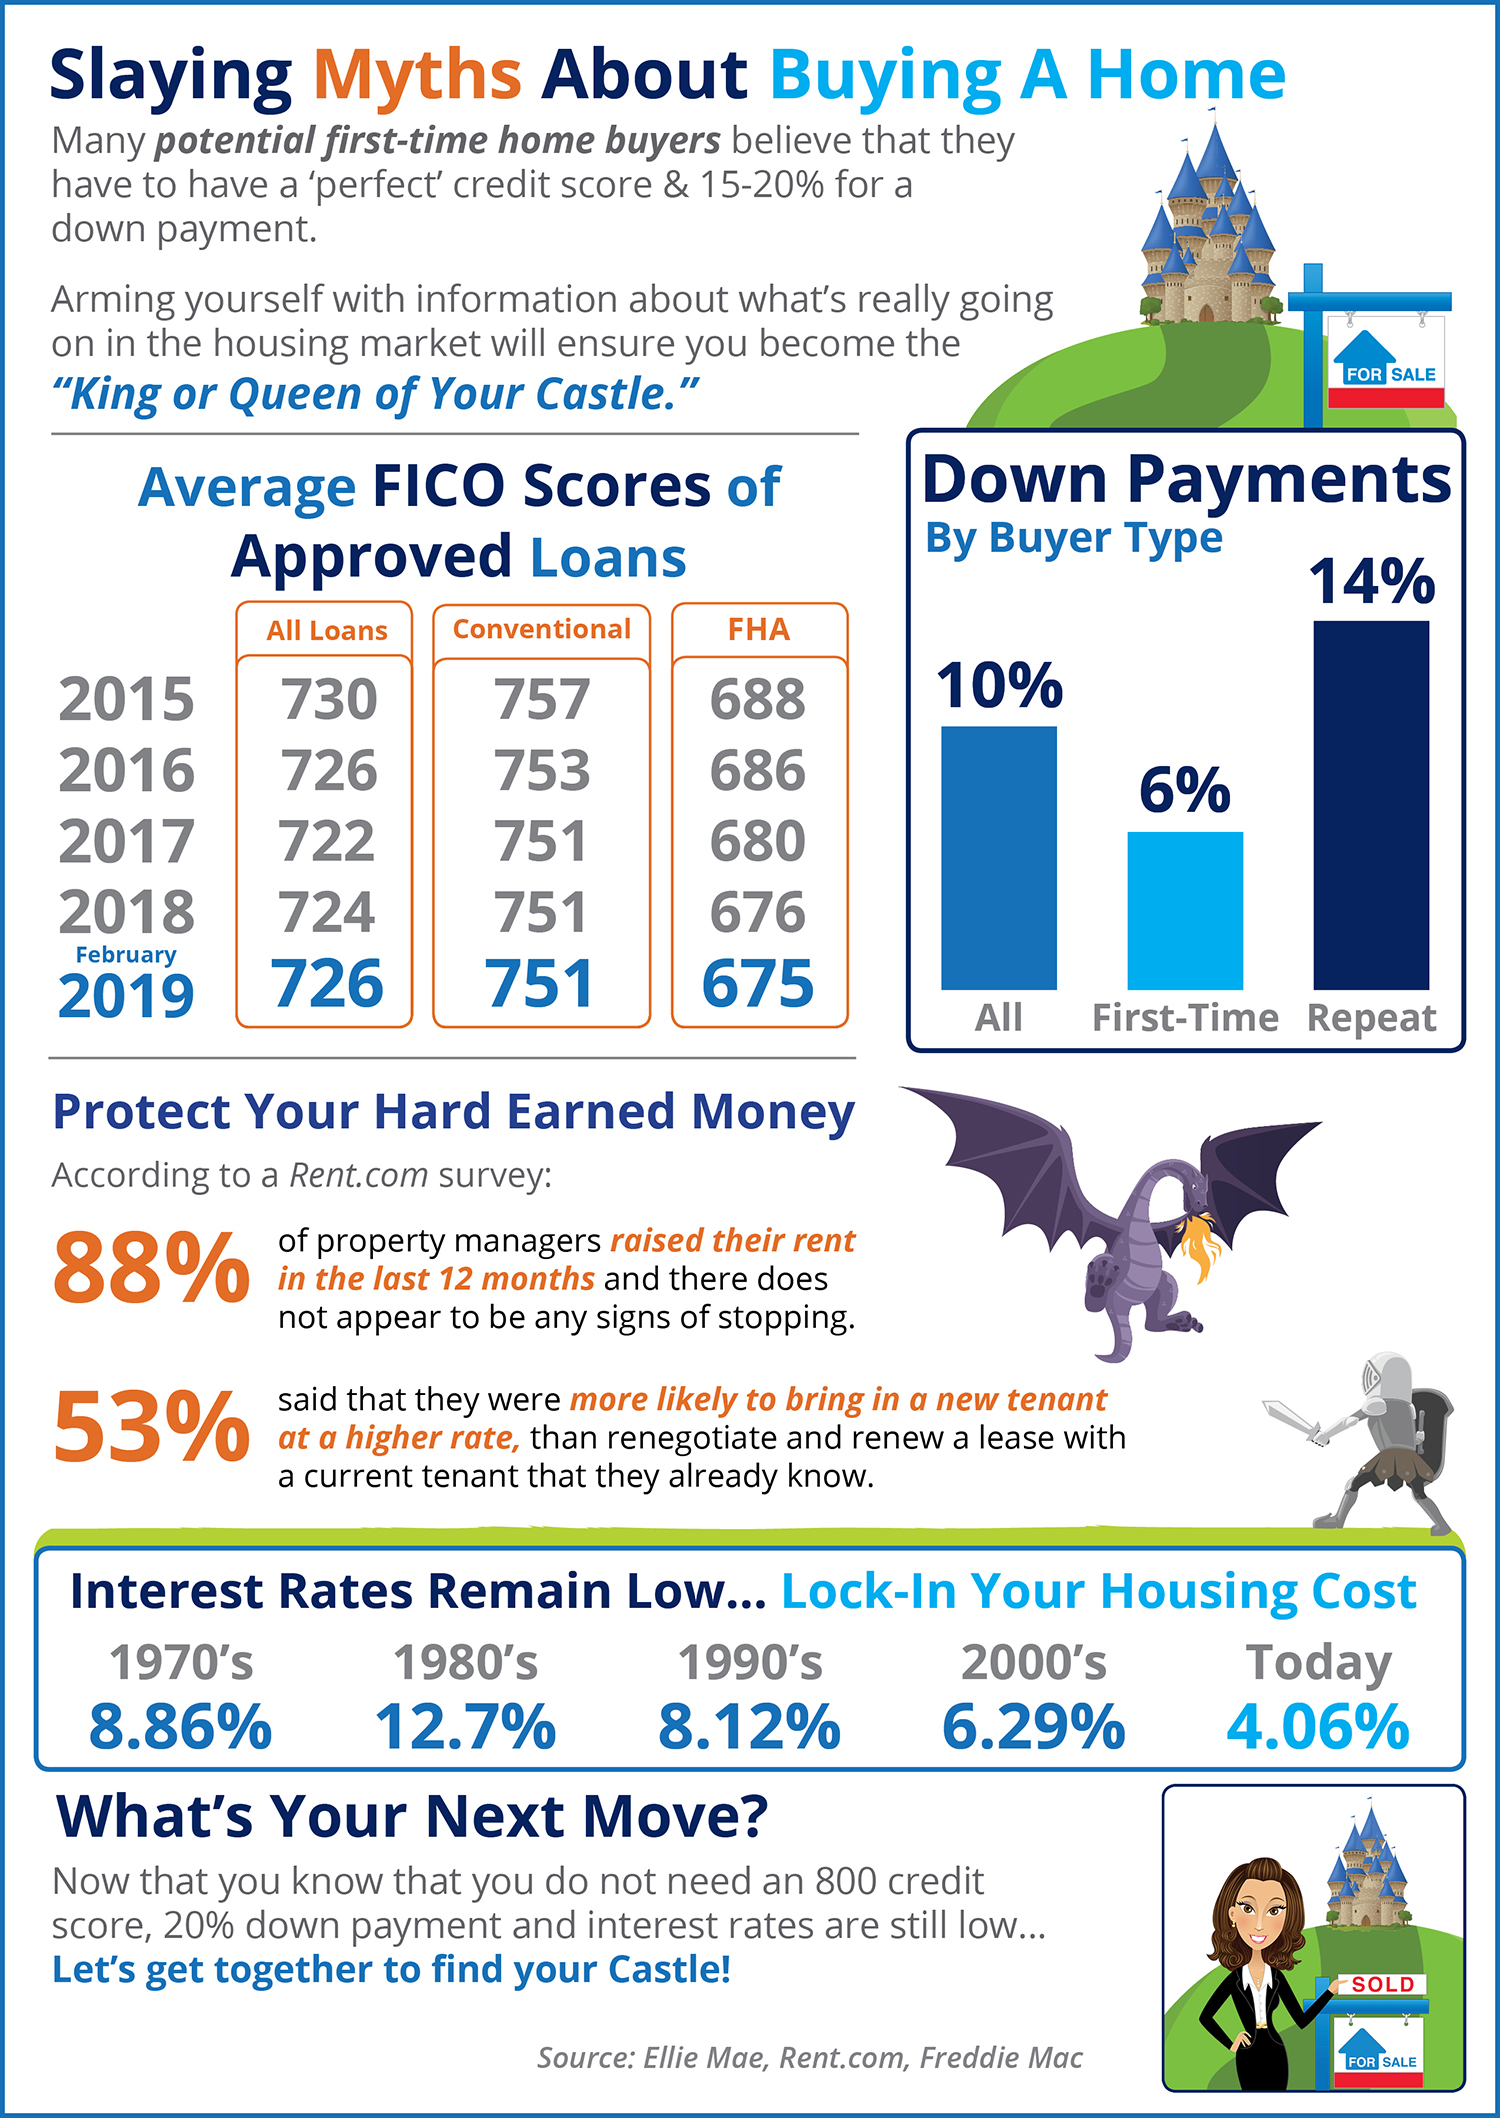 Slaying the Largest Homebuying Myths Today [INFOGRAPHIC] | Bridge Builders